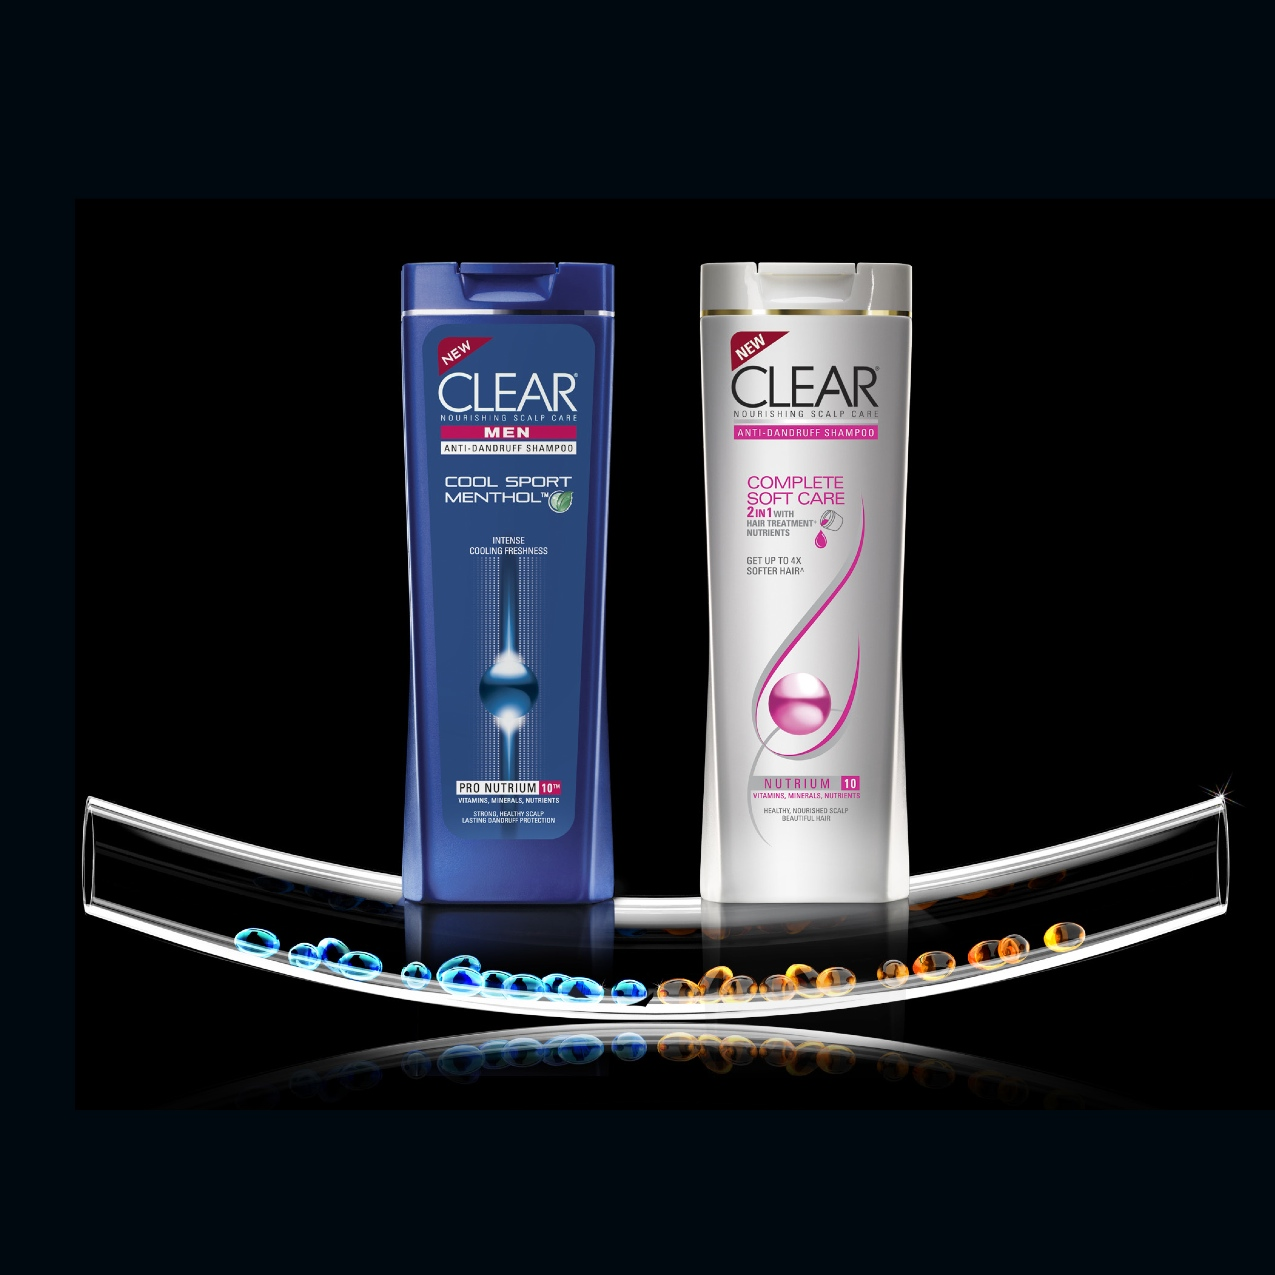 Clear Shampoo Free Fragrance Hypoallergenic Complete Soft Care Men 170 Ml Download